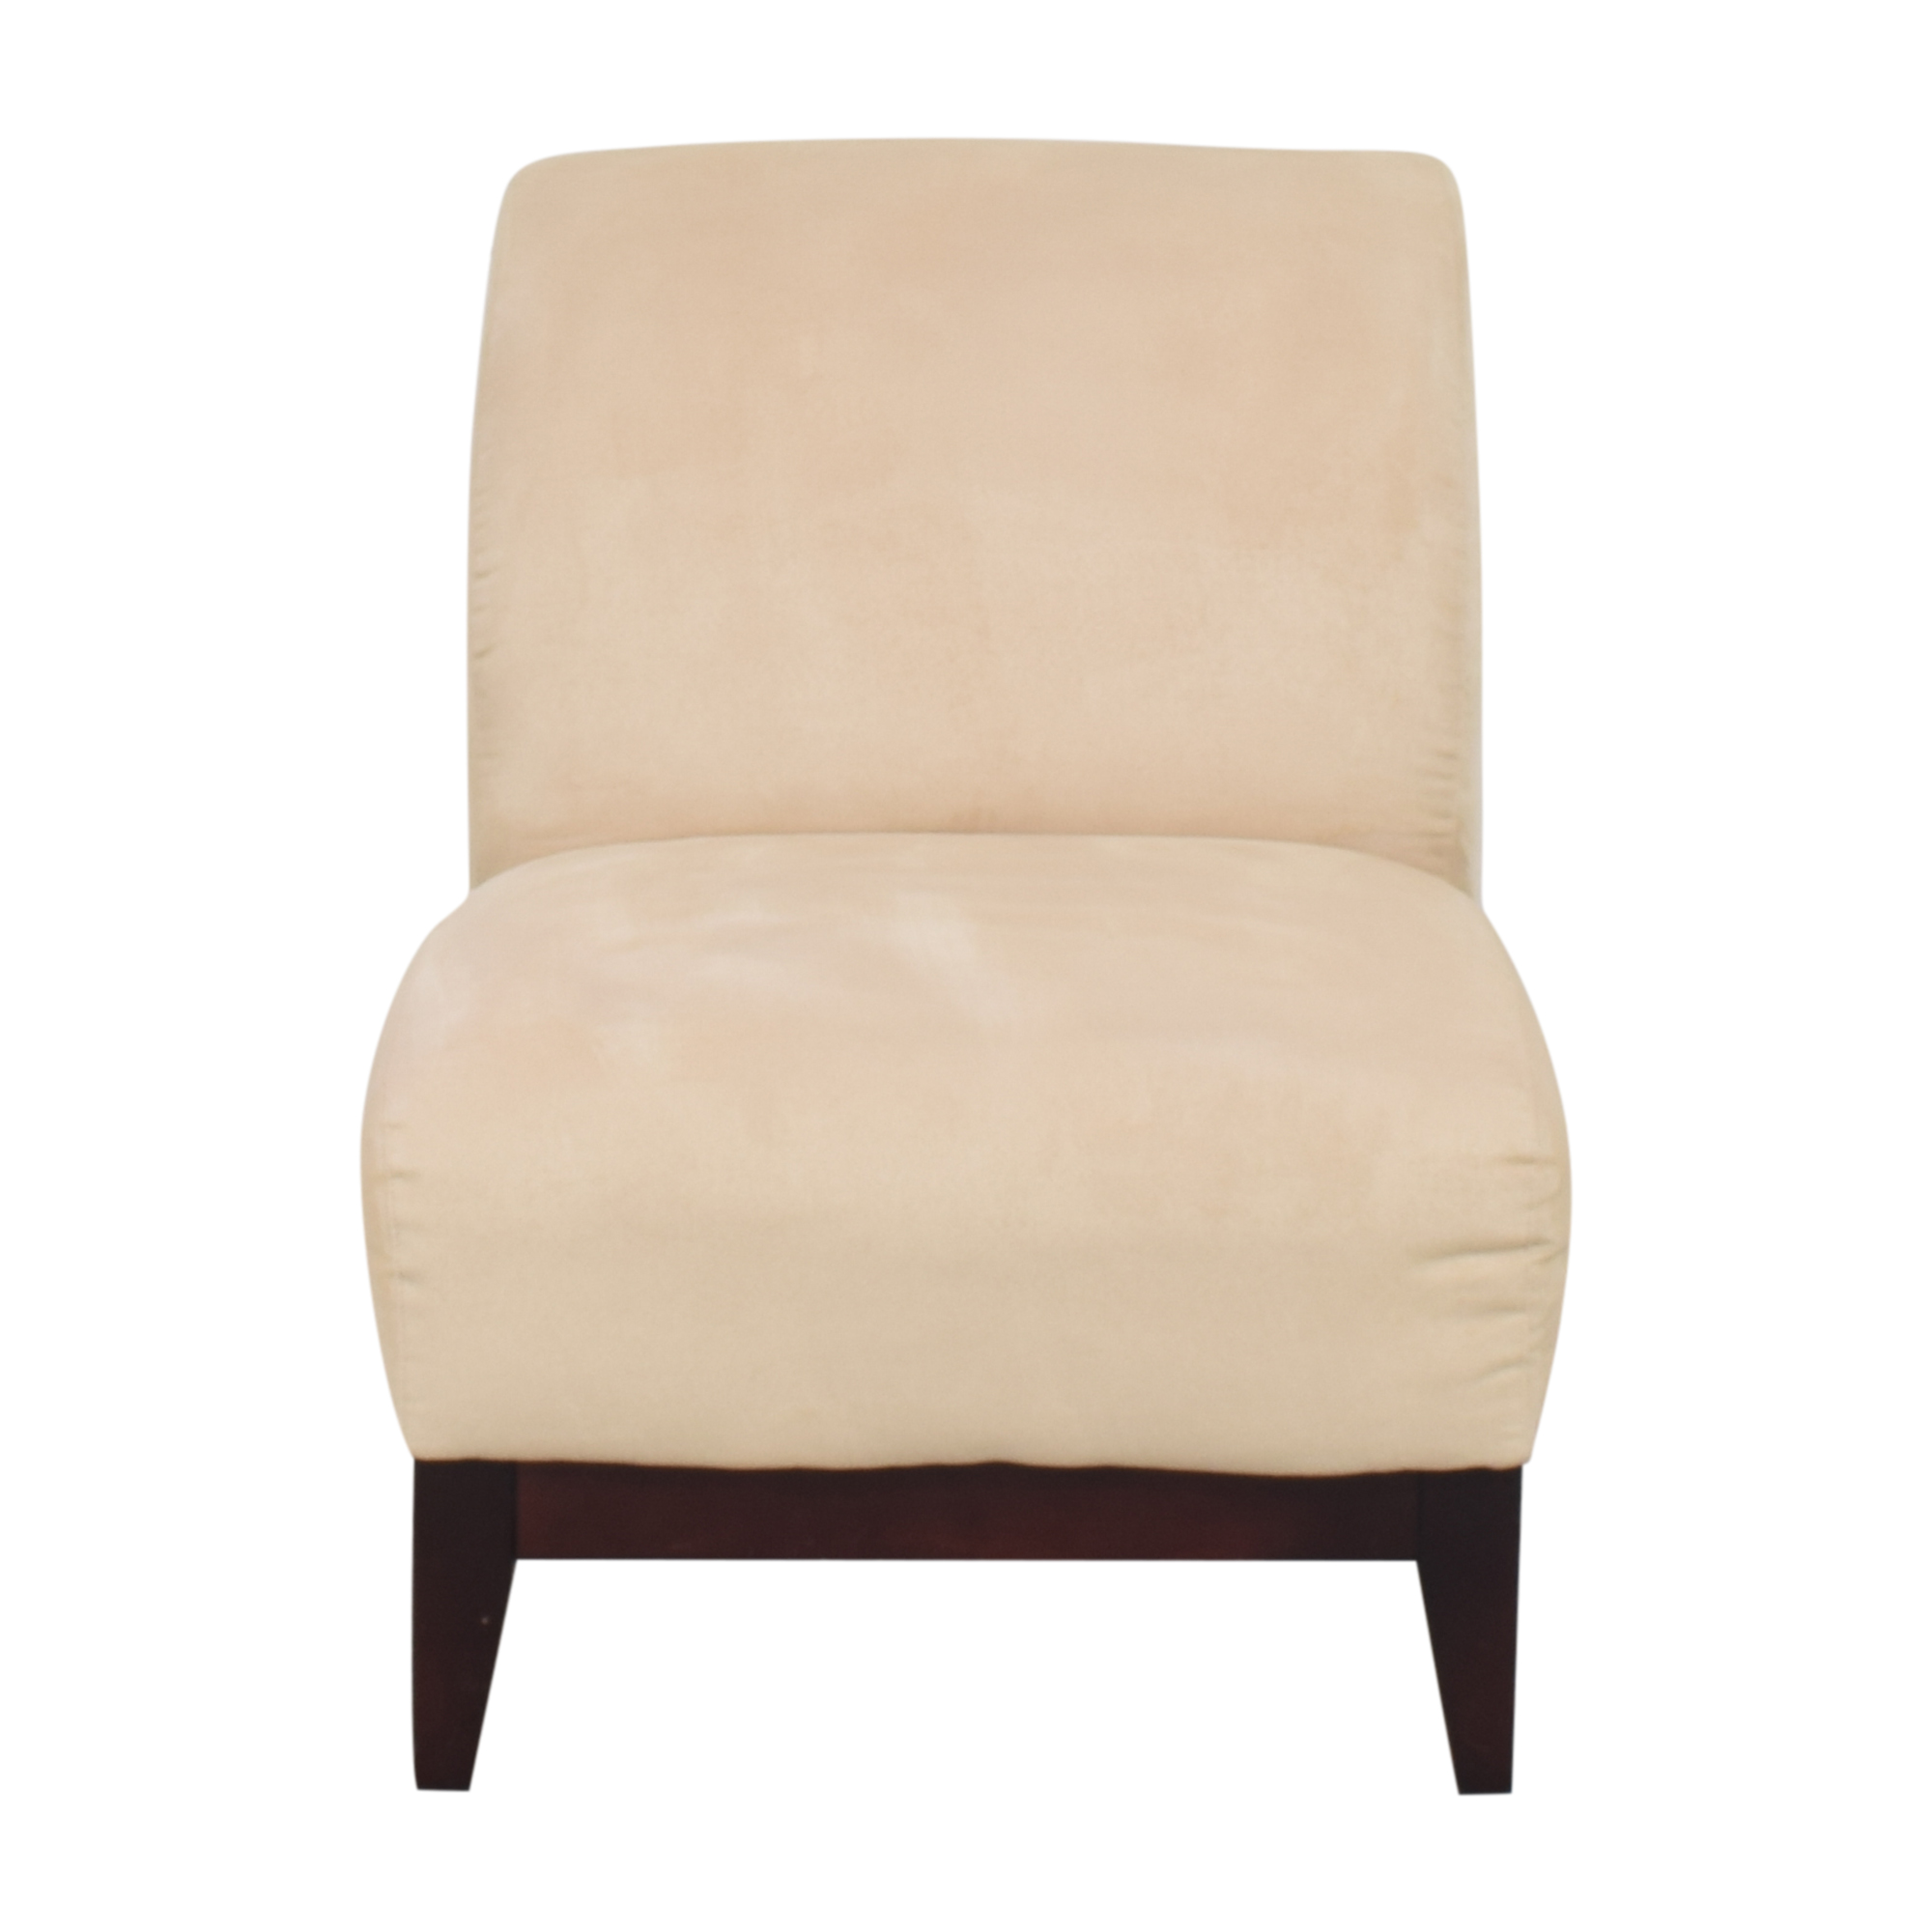 Mitchell Gold + Bob Williams Mitchell Gold + Bob Williams Slipper Chair beige and brown